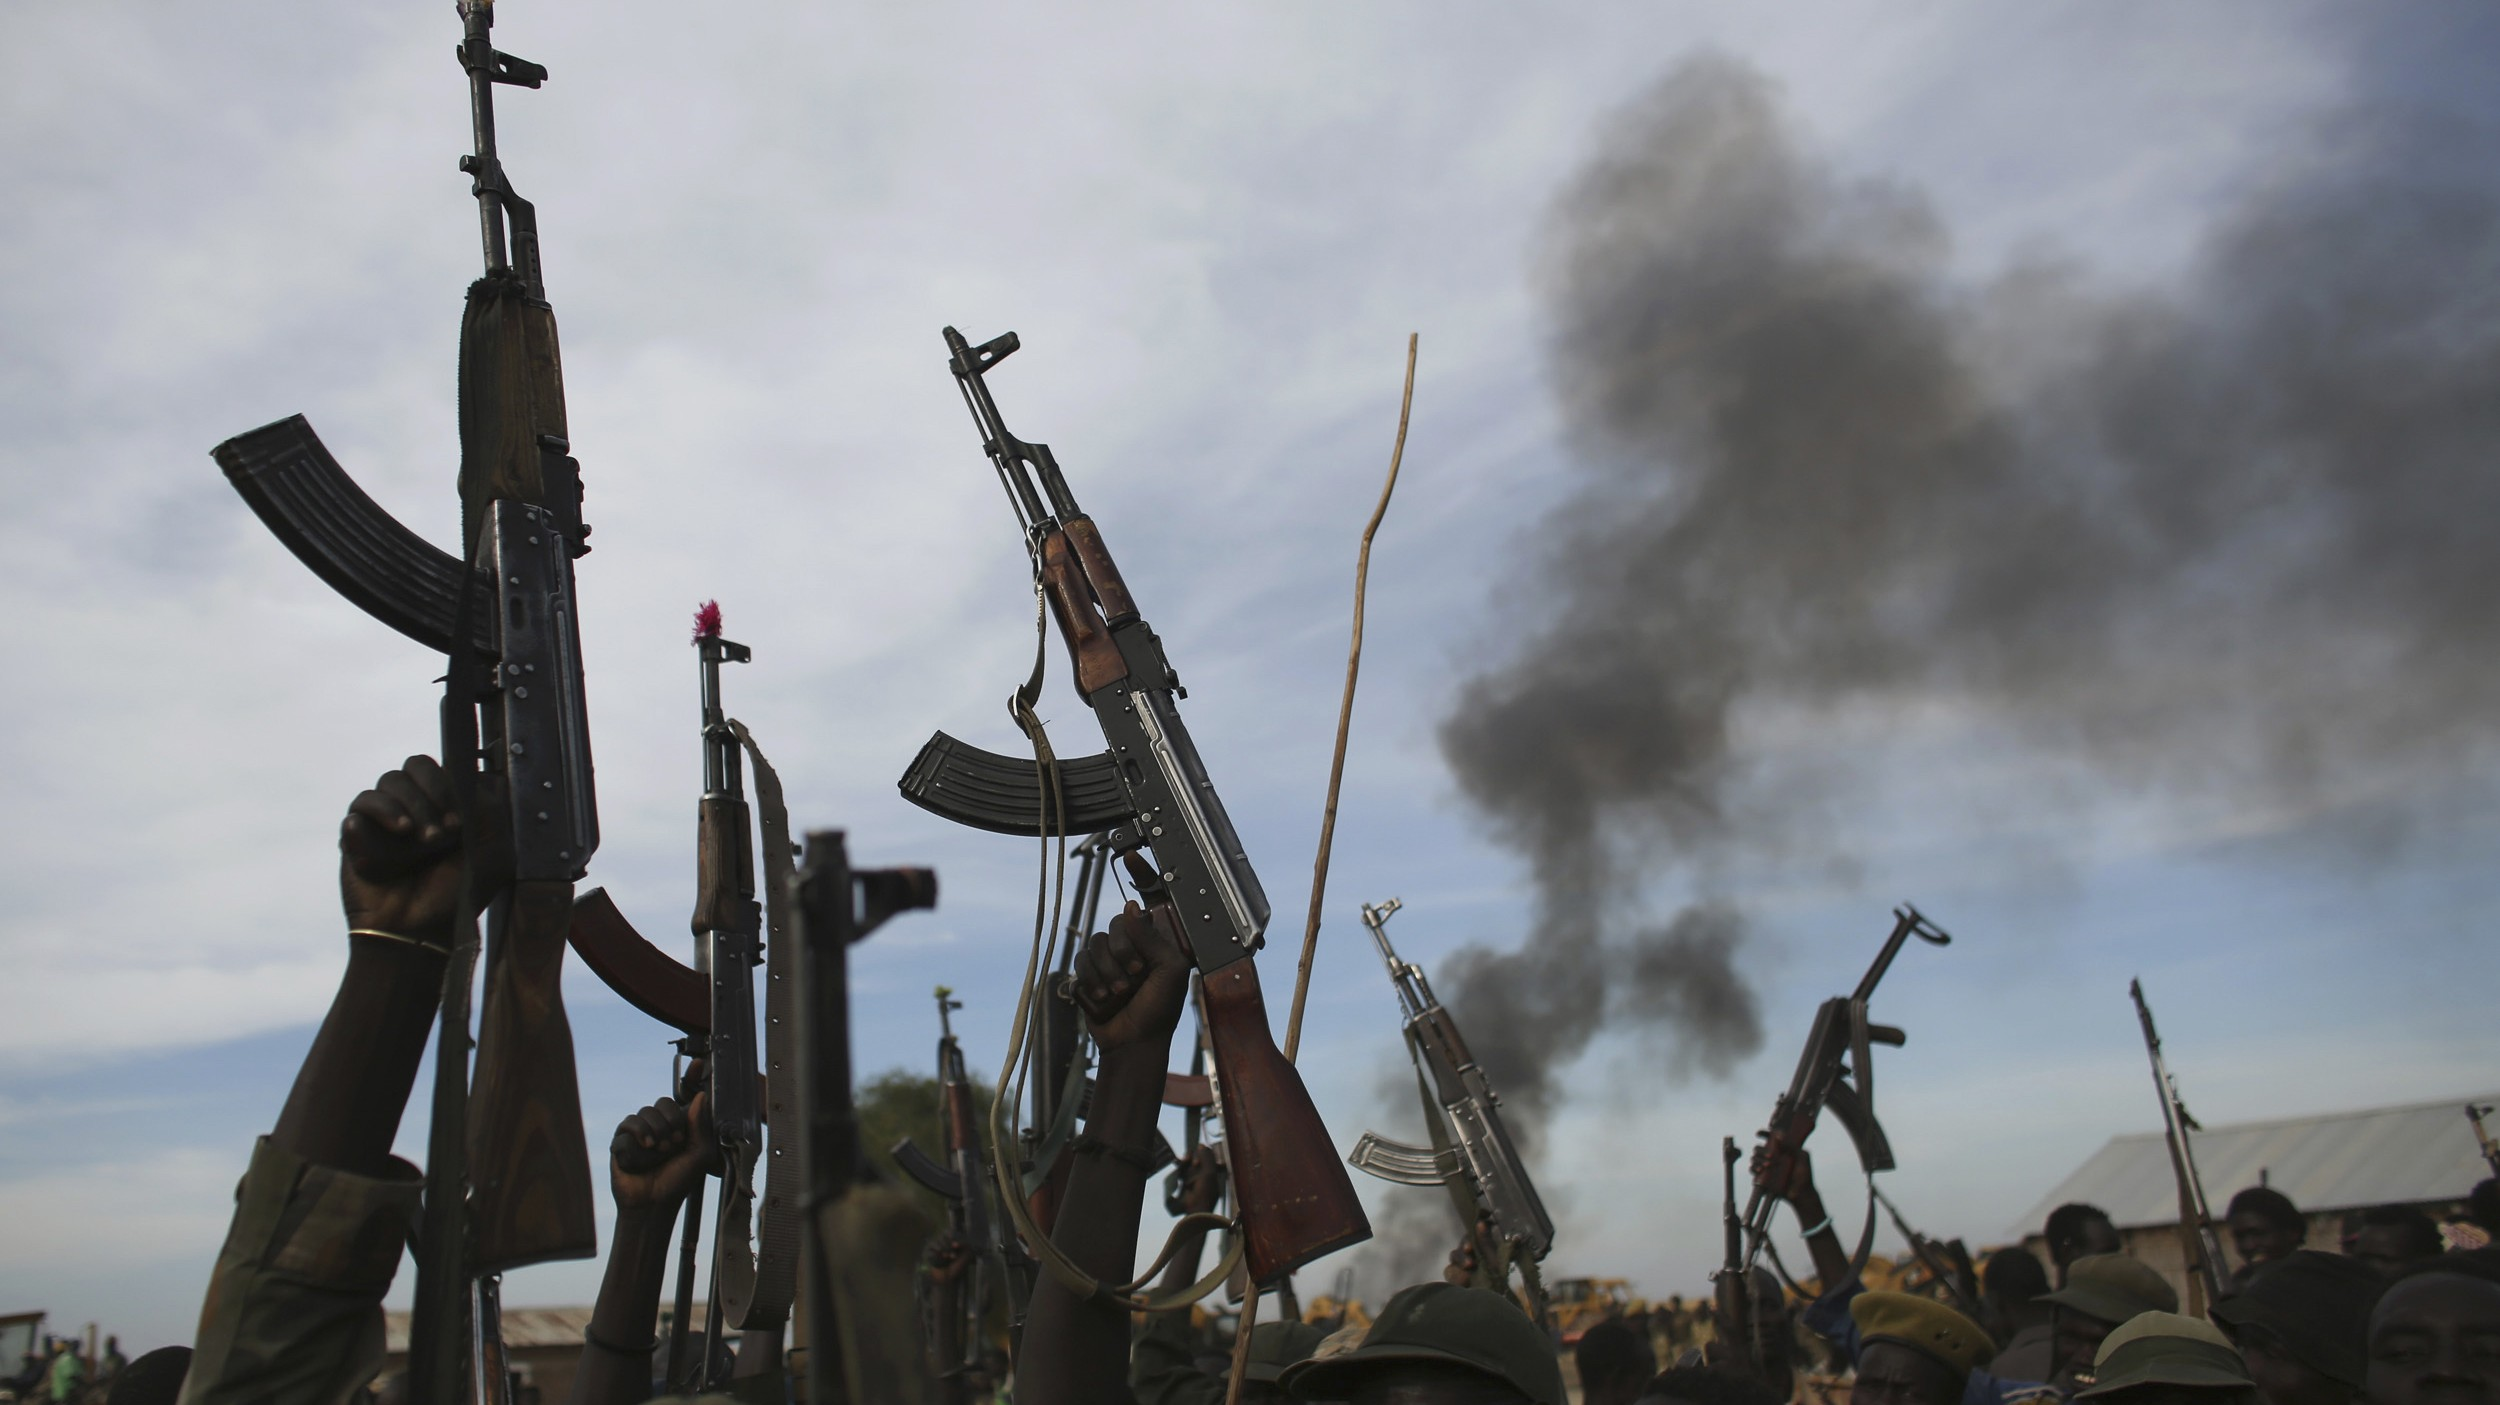 The UN Says South Sudan's Army Raped Girls and Burnt Them Alive